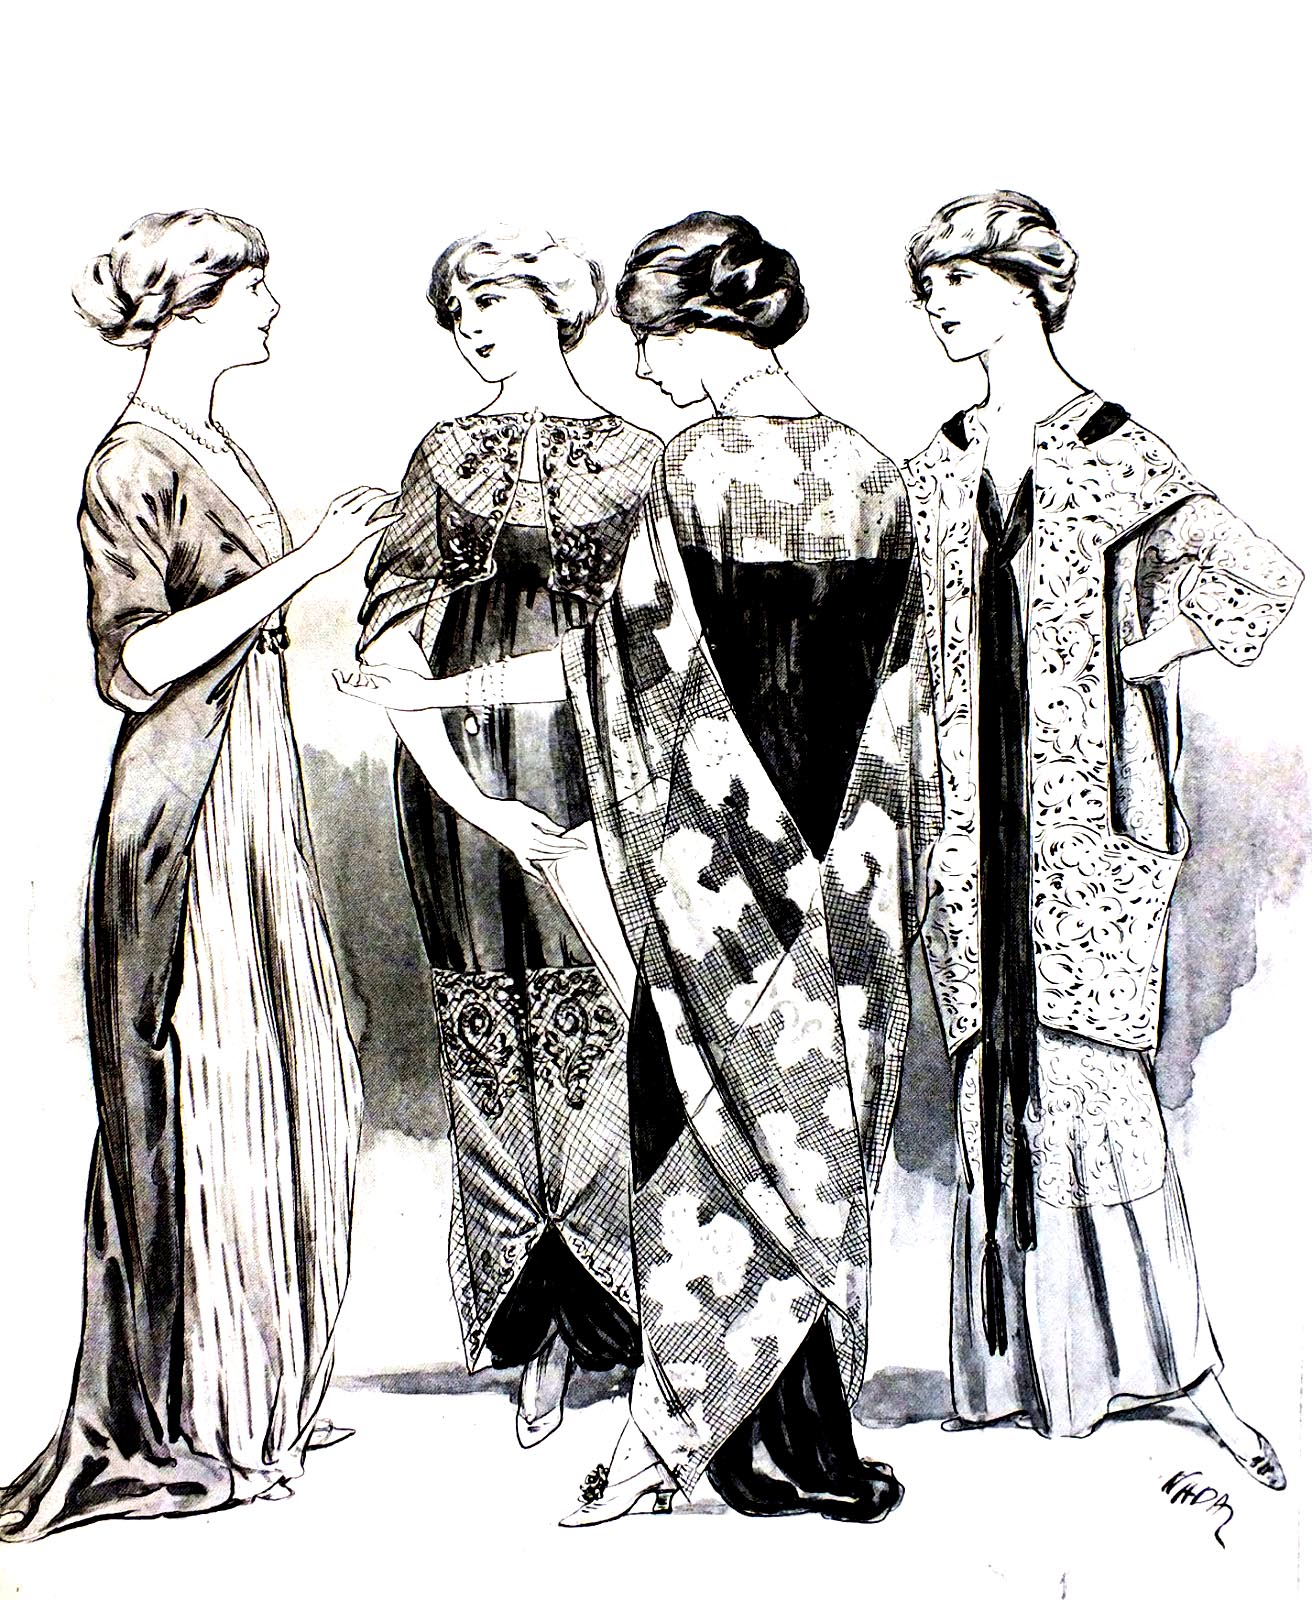 Coloring page based on a Vintage fashion plate